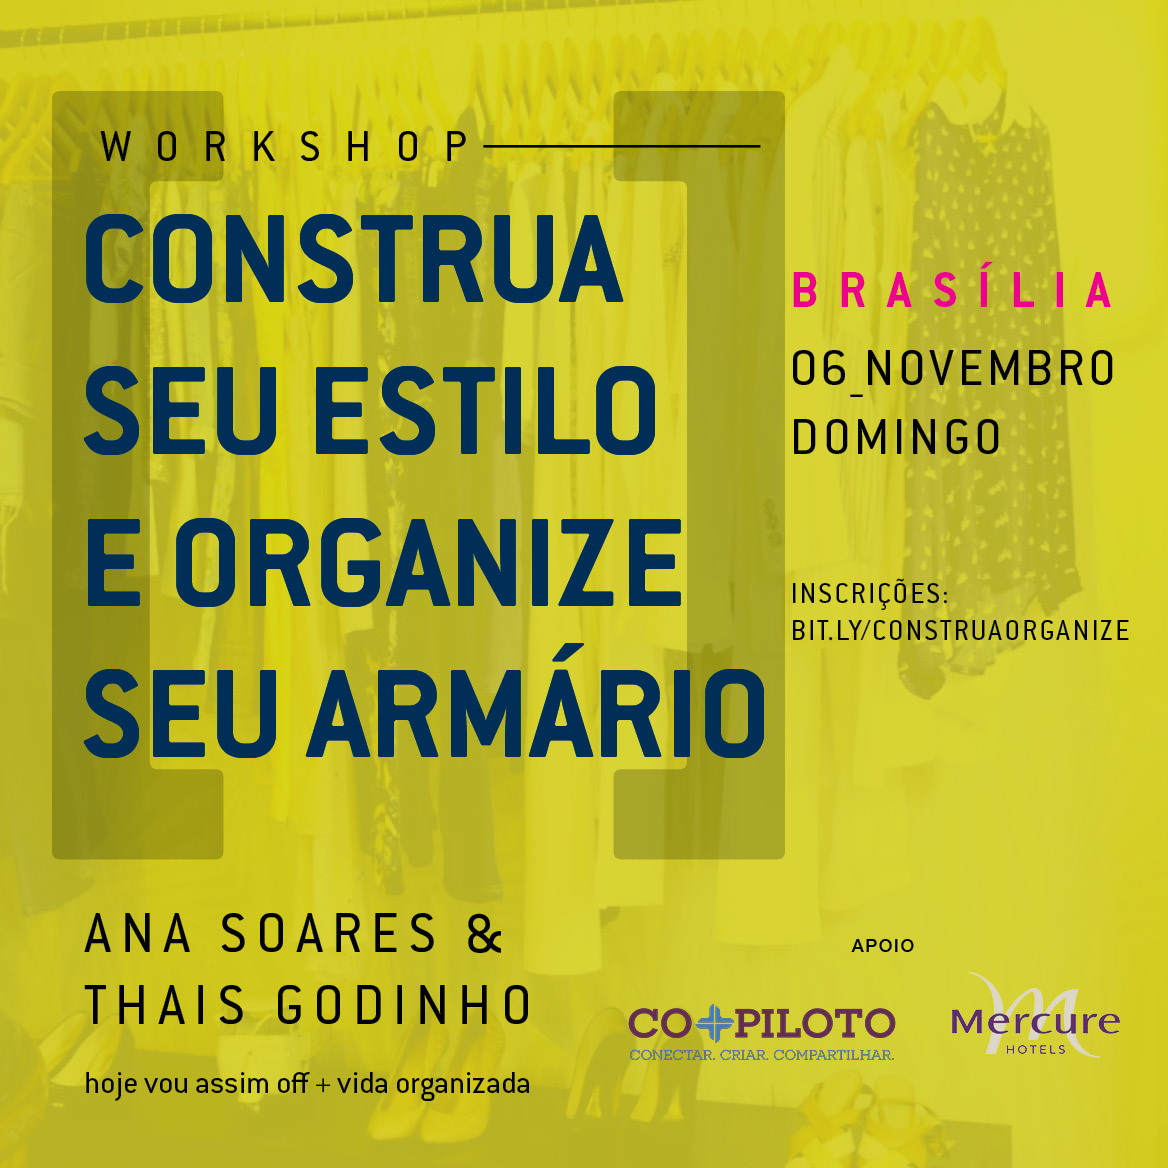 workshop-construa-organize